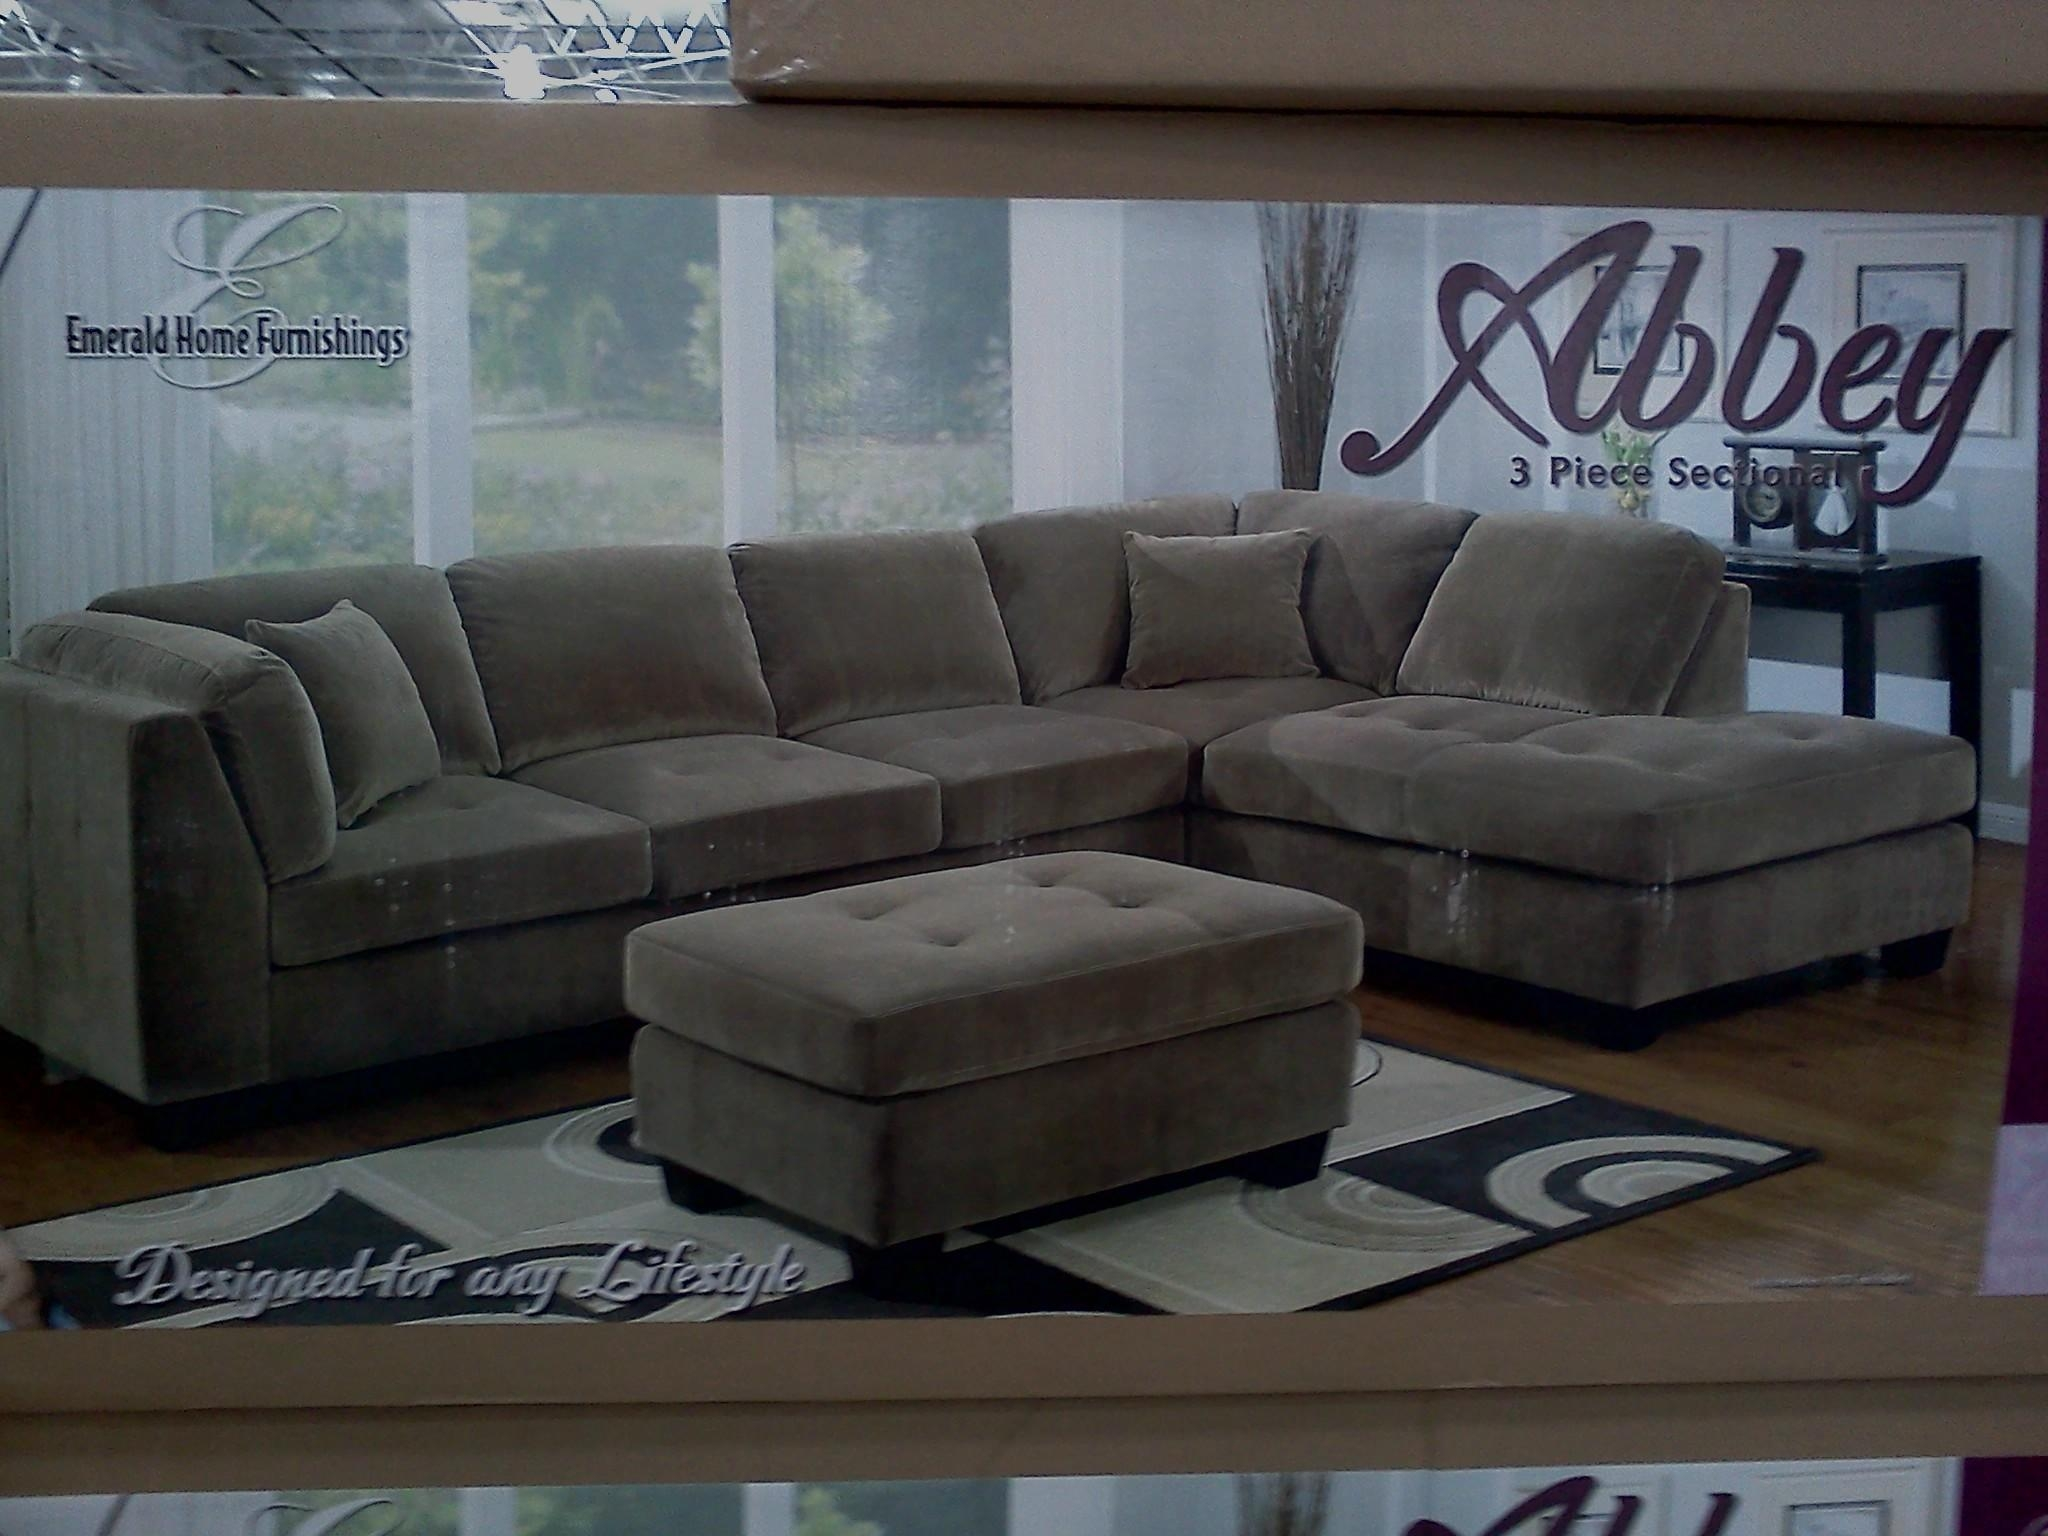 Sectional Leather Sofa Costco | Tehranmix Decoration With Costco Leather Sectional Sofas (Image 16 of 20)